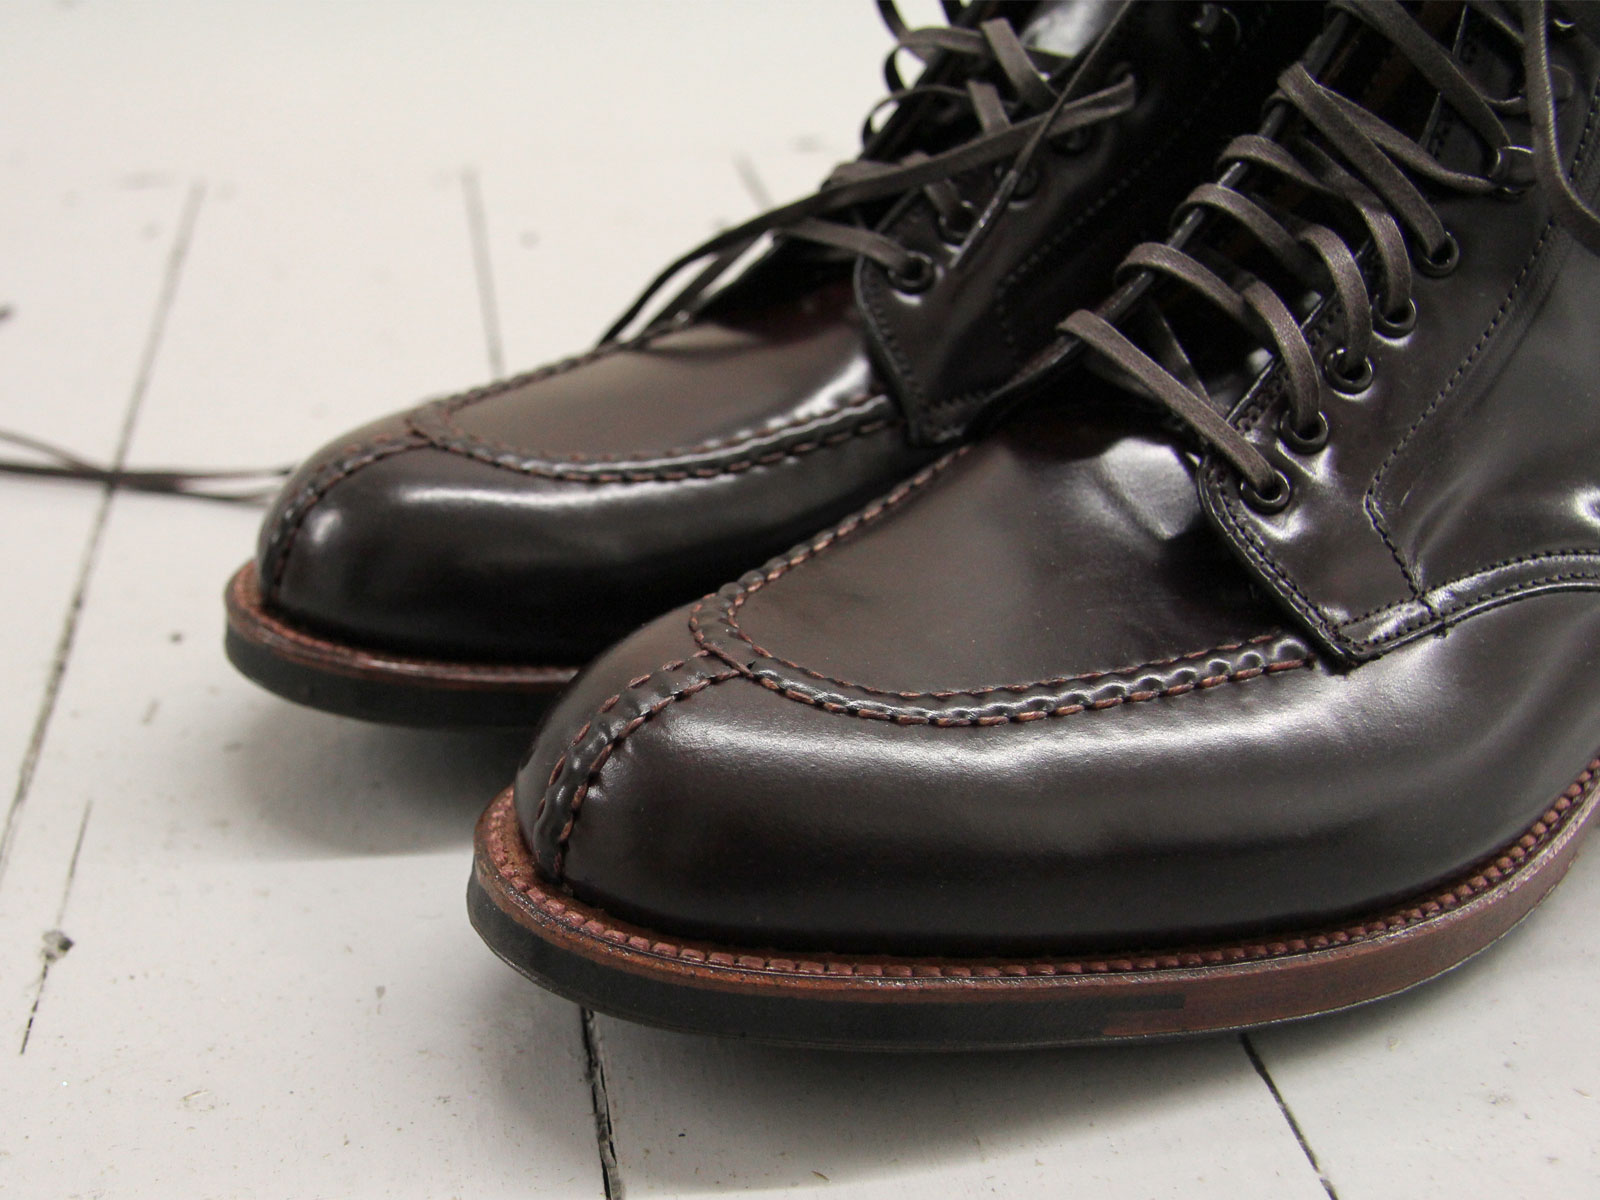 The Norwegian Split Toe: A detail that sets the Tanker Boot apart from the classic Indy.